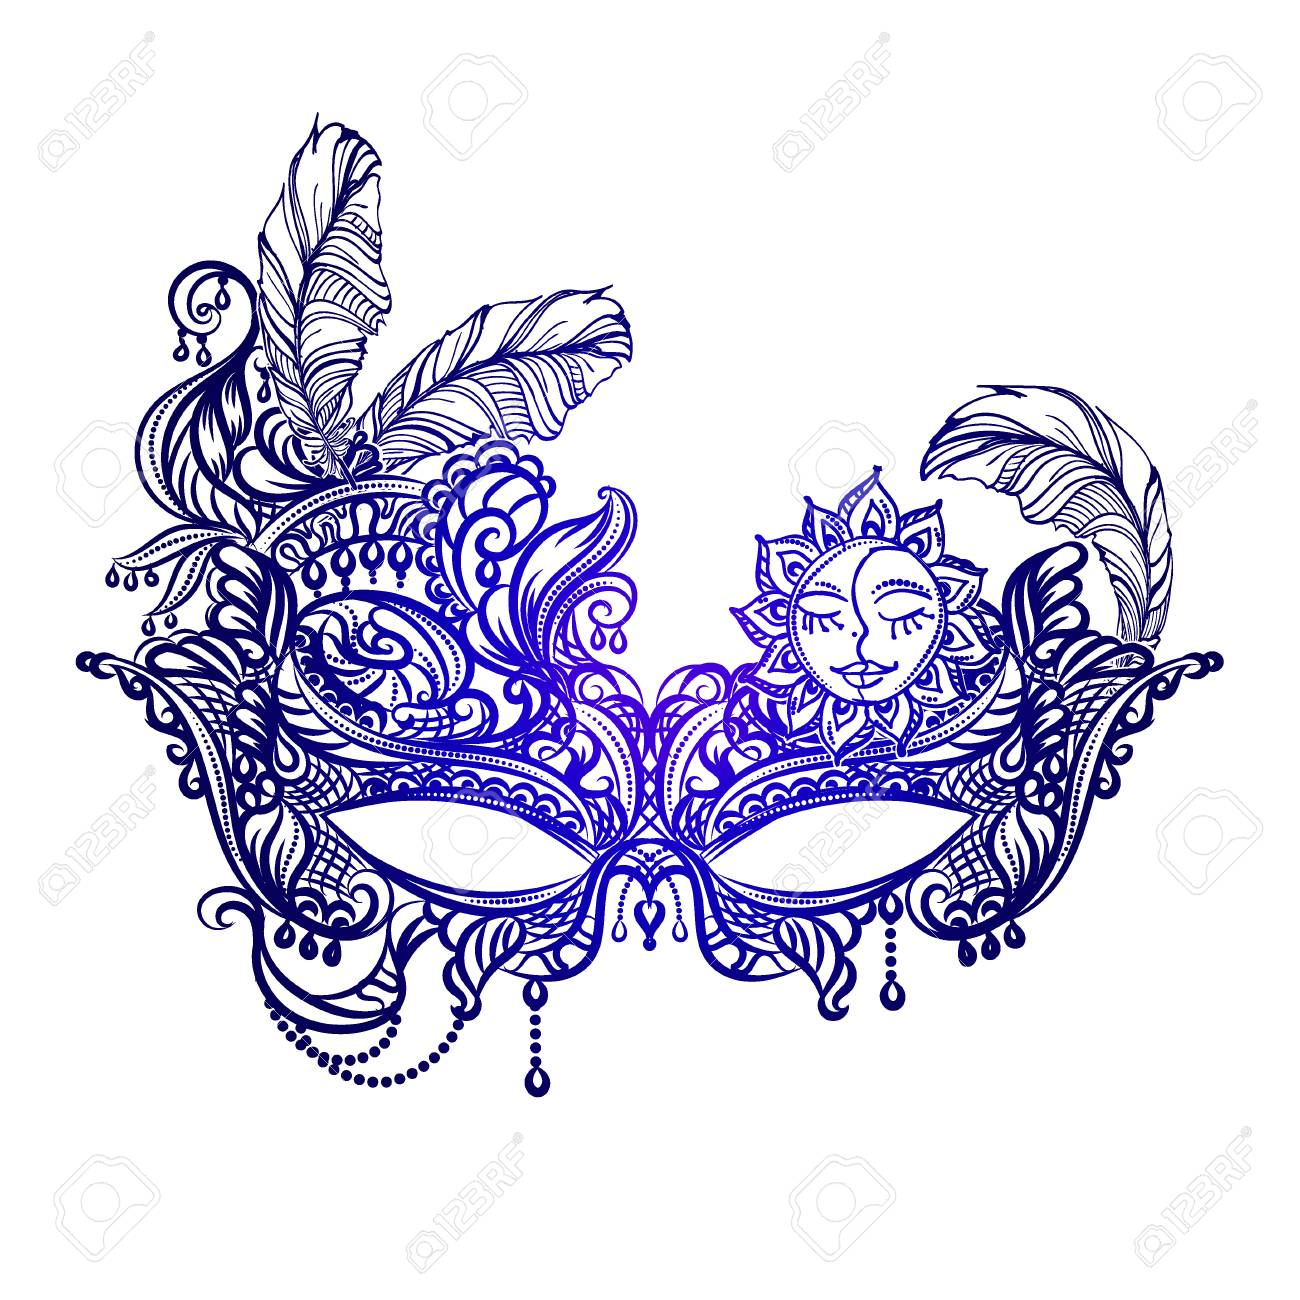 Hand drawn face masks in the style of Boho Chic. Festival Mardi Gras, masquerade. - 69824352